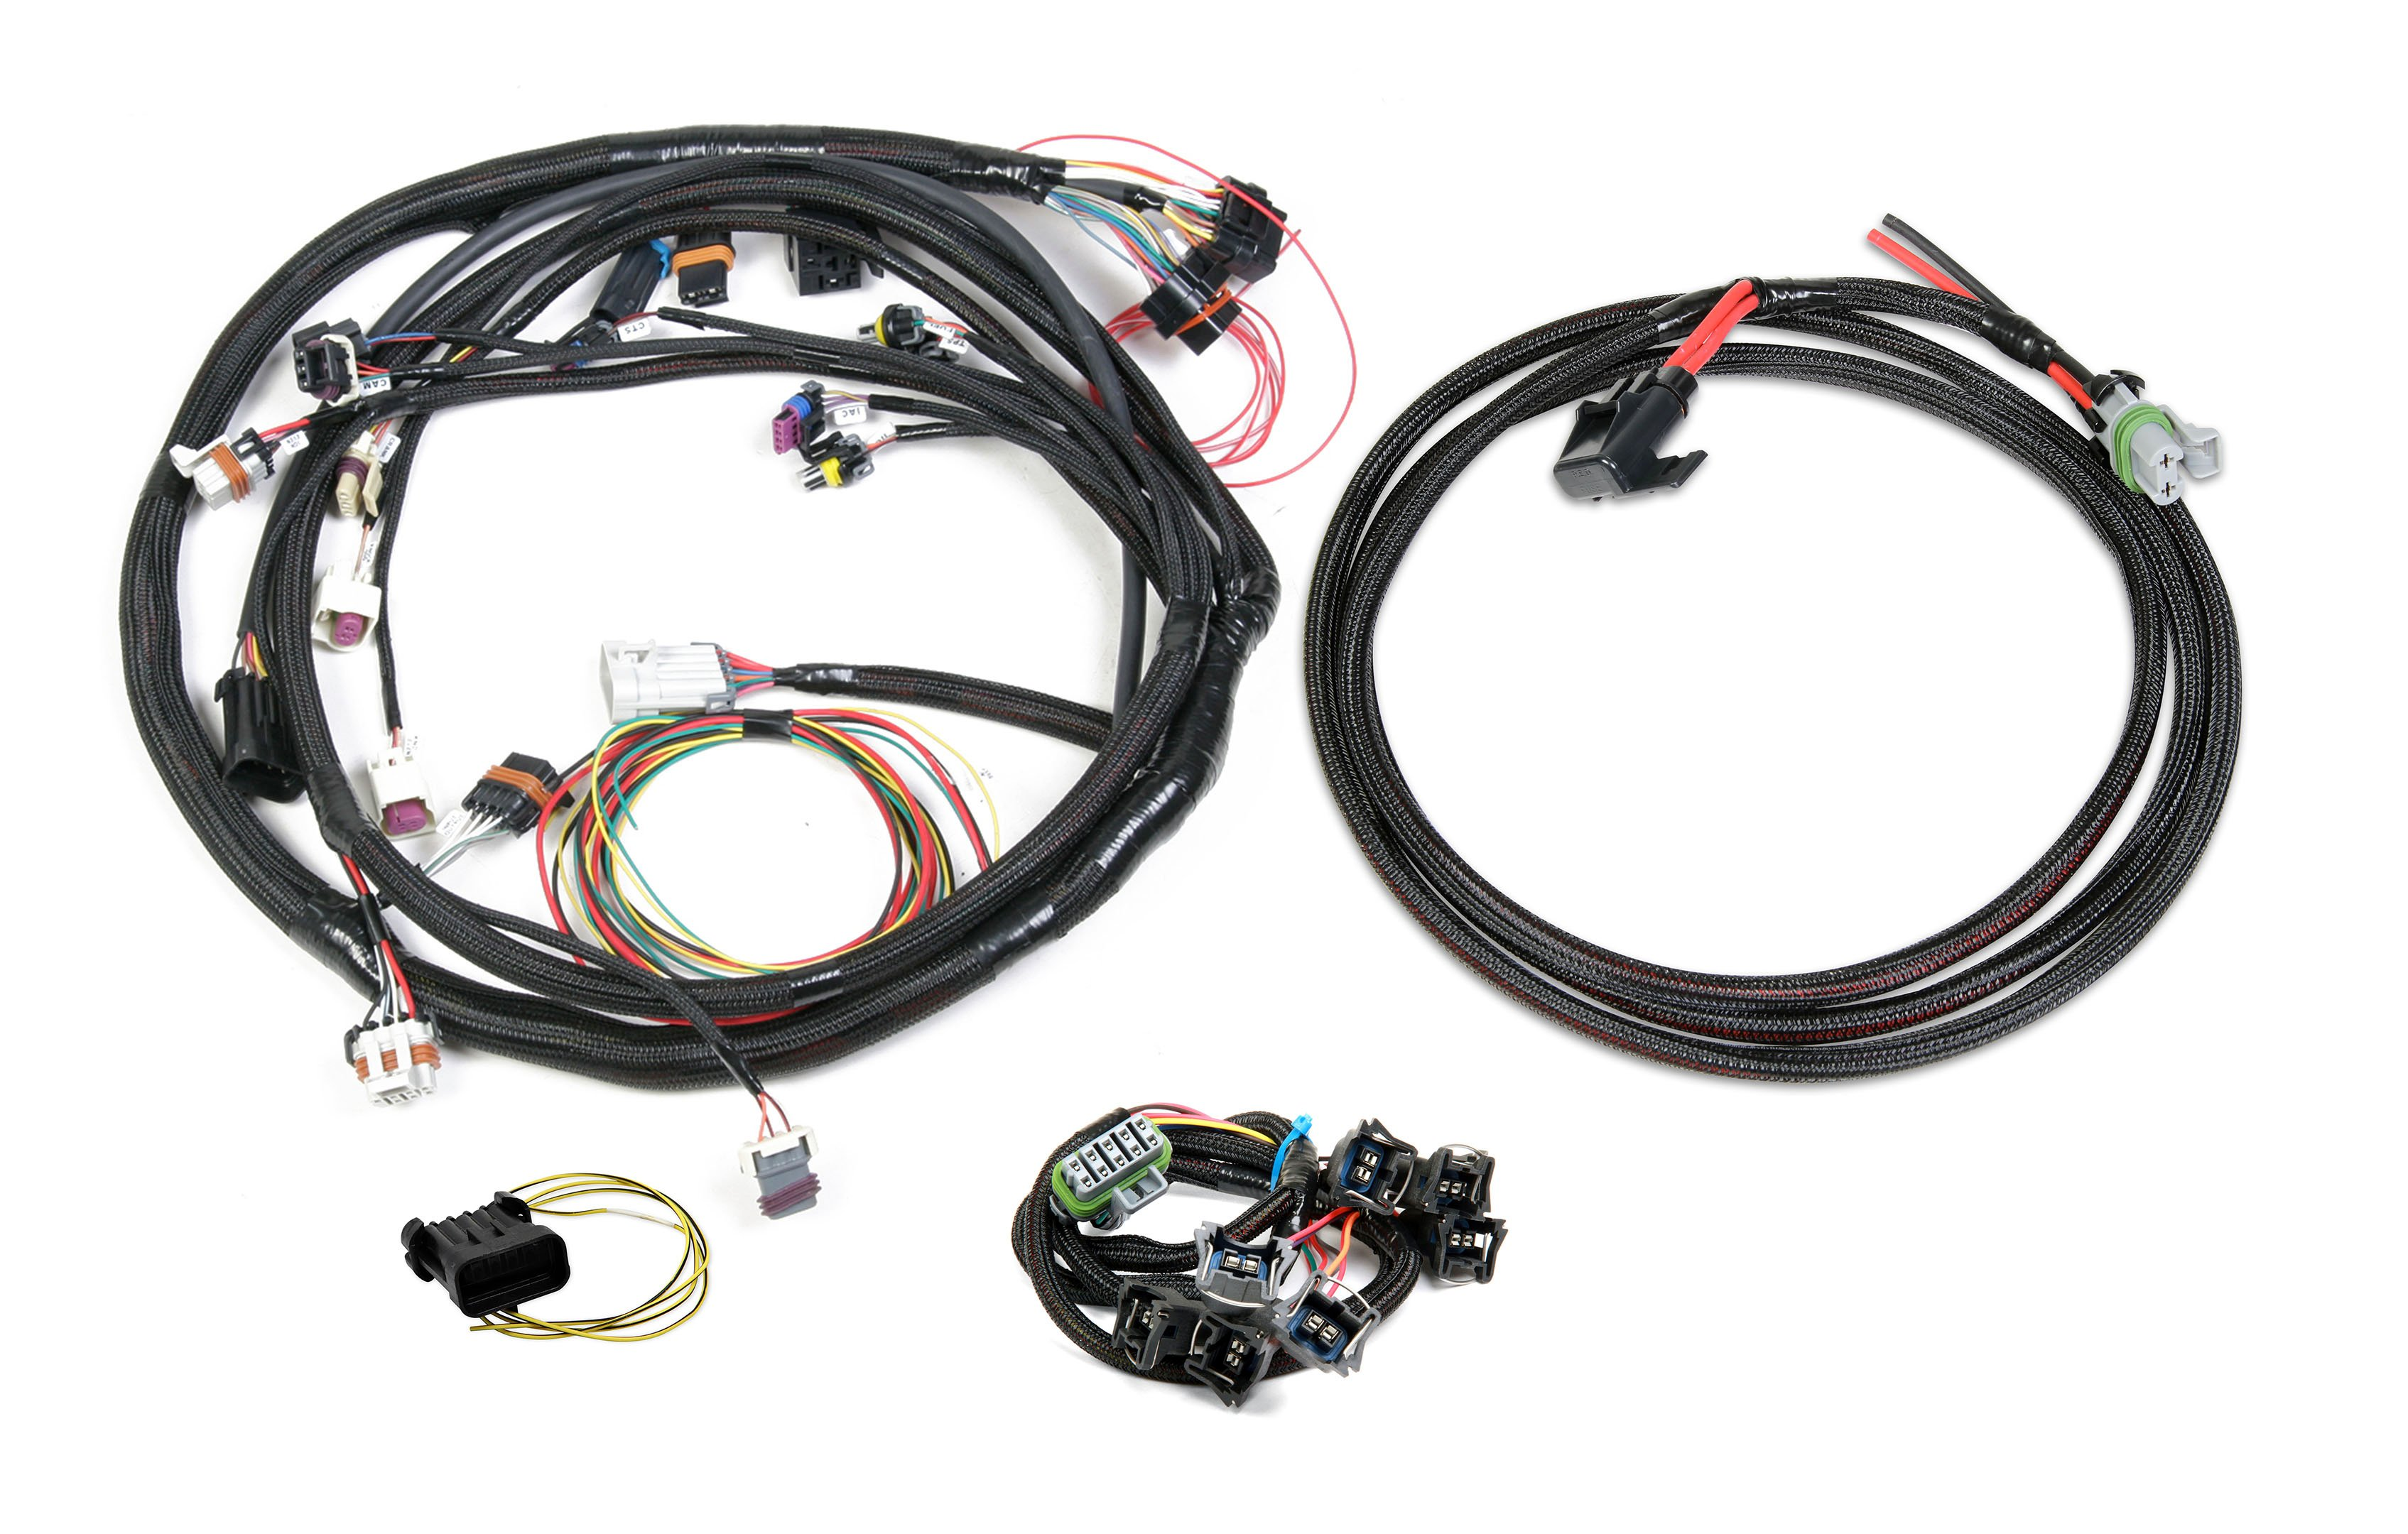 Ford Fuel Injection Wiring Harness